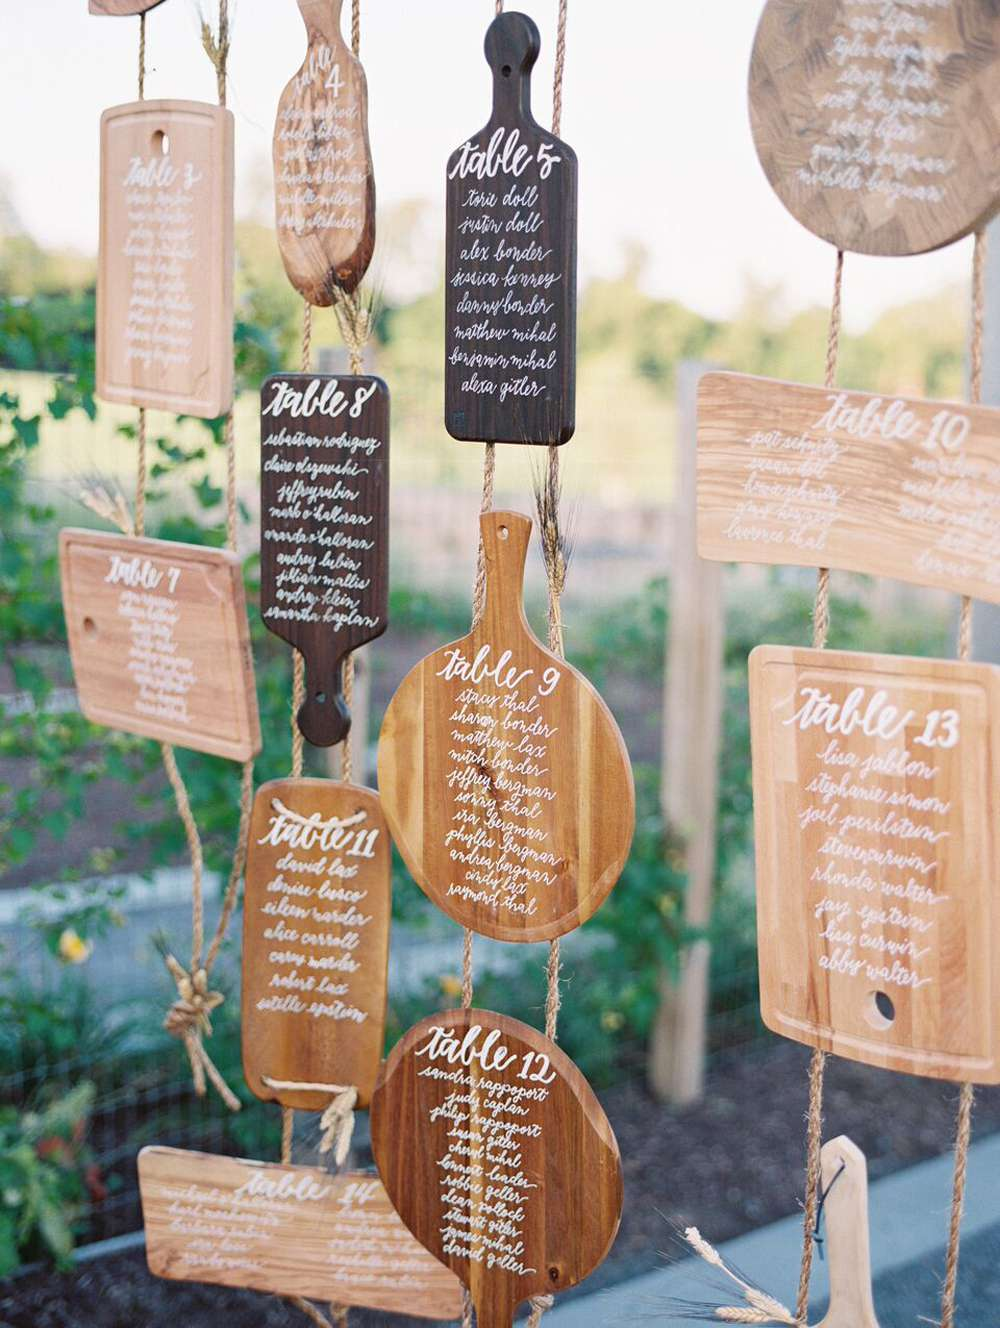 7 Wooden Serving Board Ideas For Your Rustic Wedding